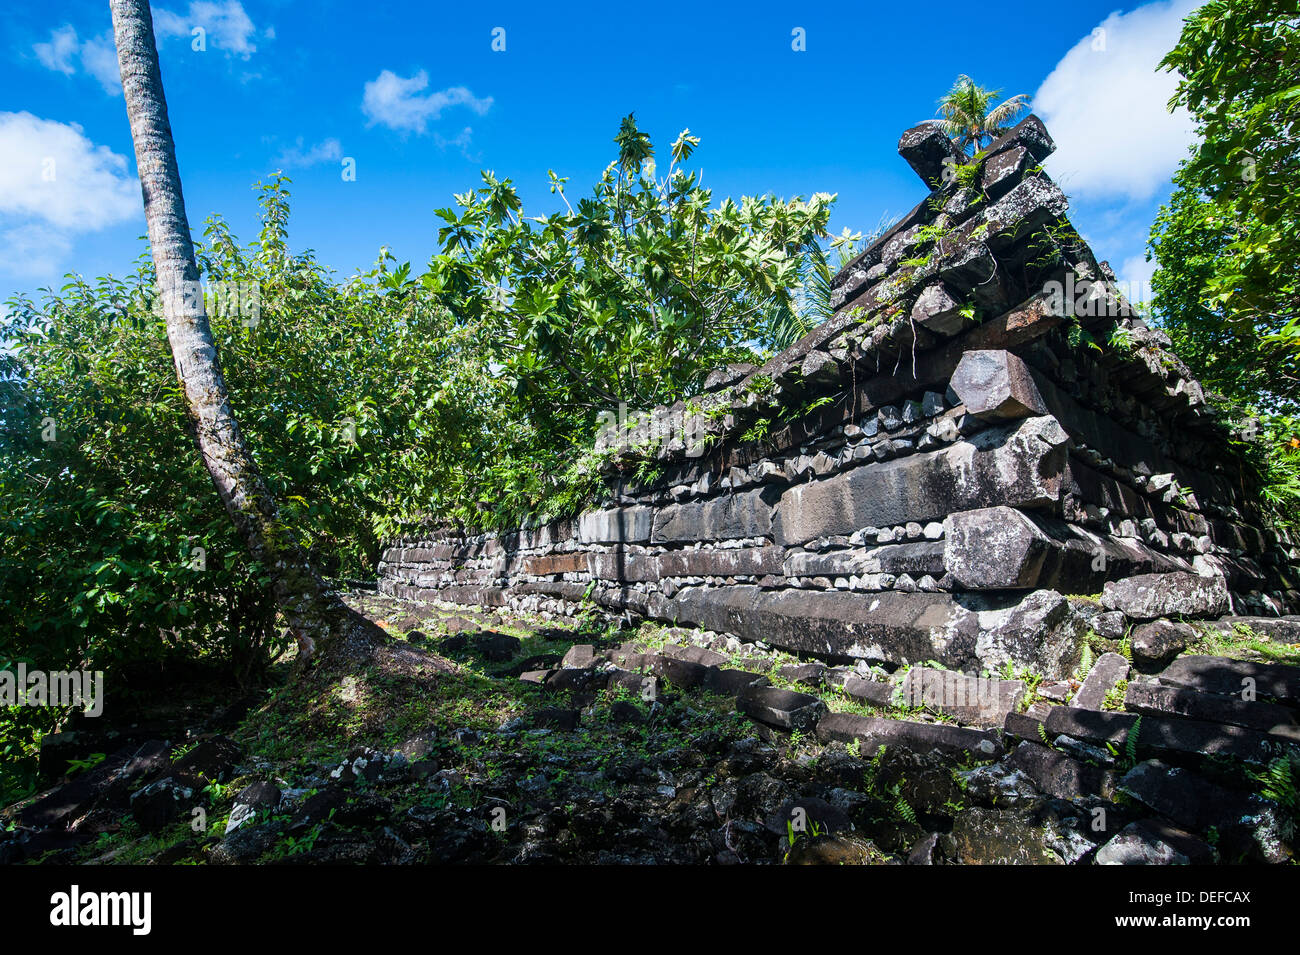 Ruined city of Nan Madol, Pohnpei (Ponape), Federated States of Micronesia, Caroline Islands, Central Pacific, Pacific Stock Photo